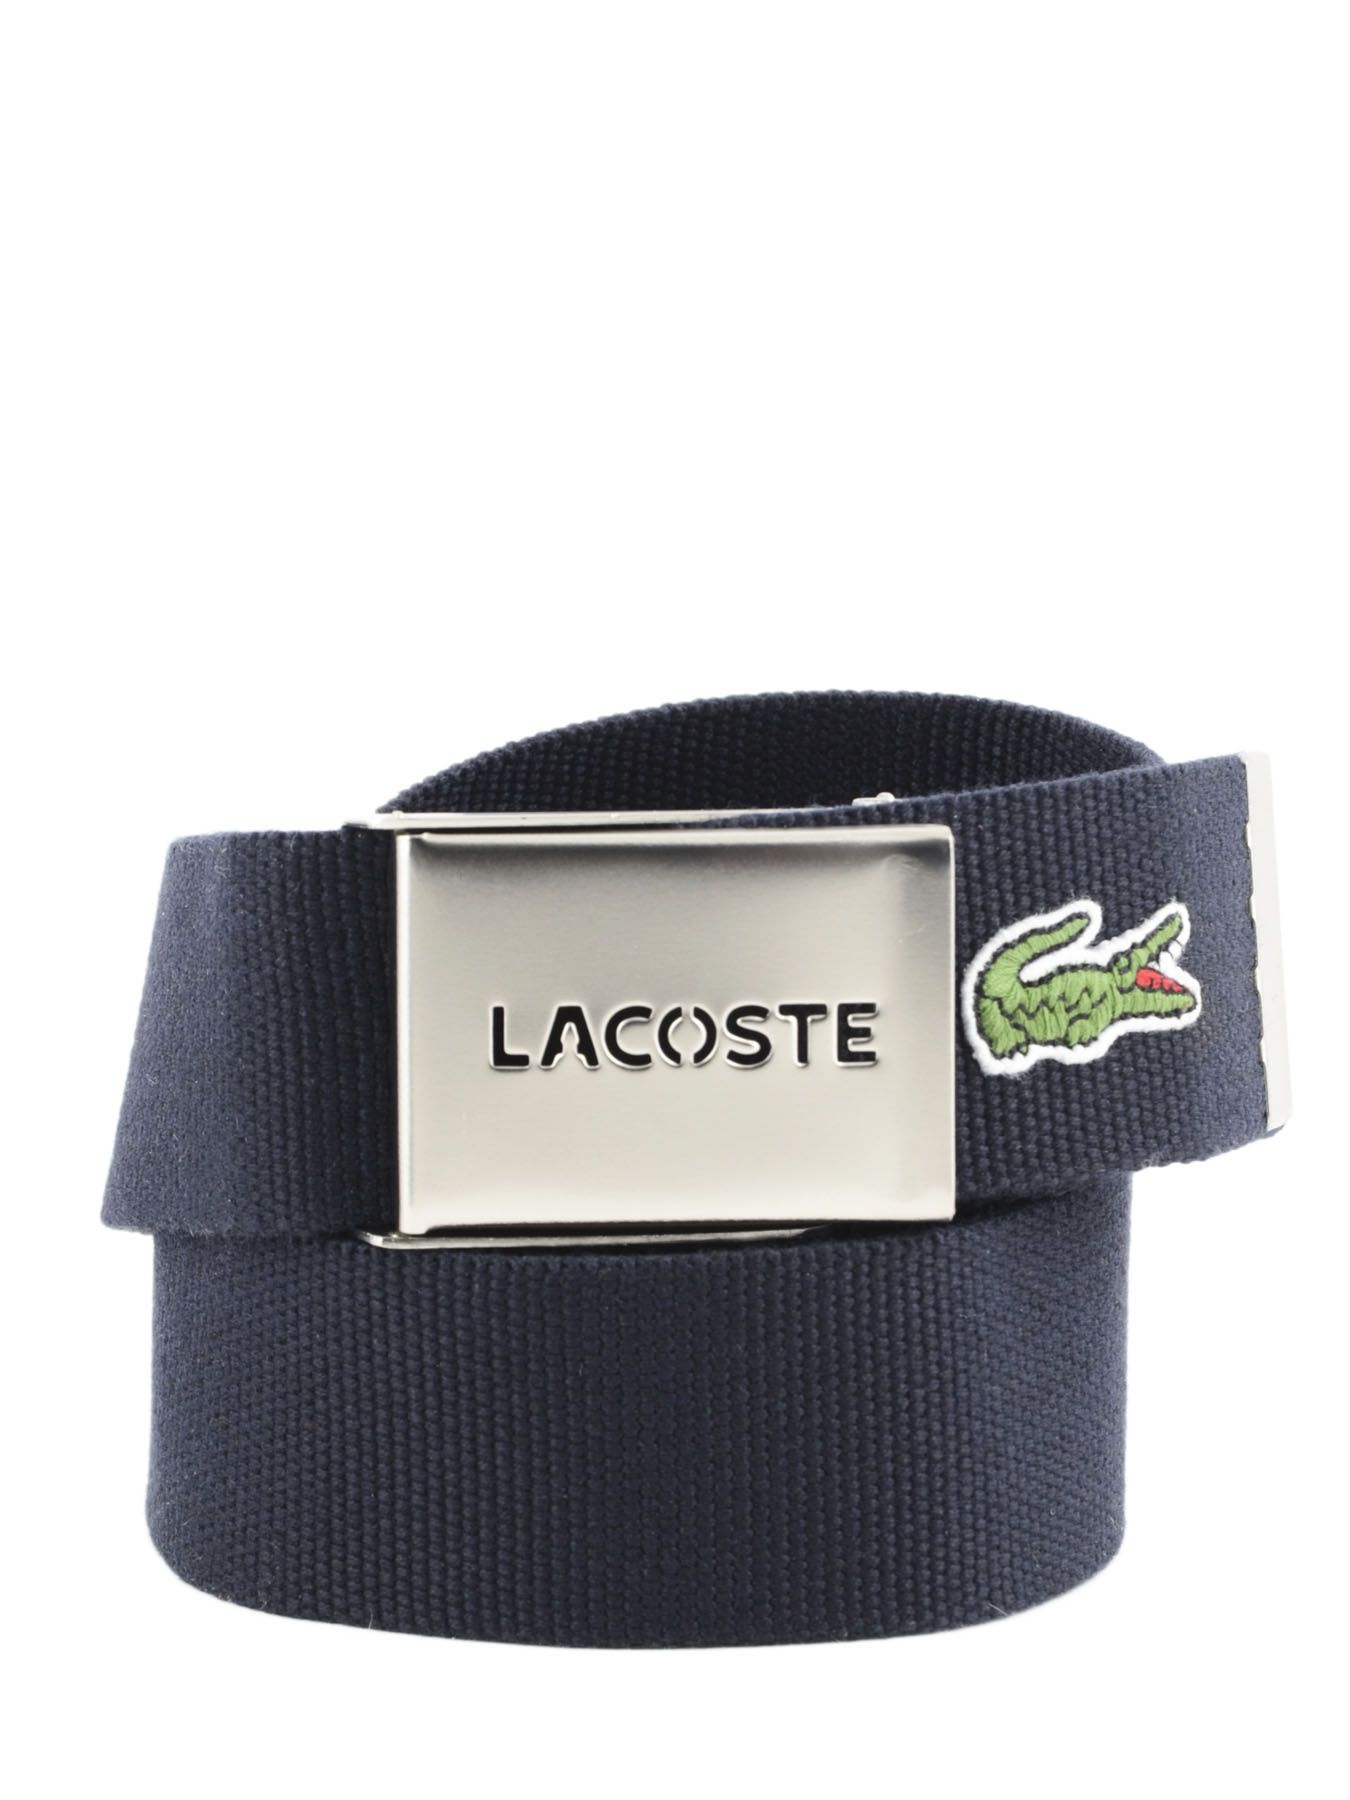 ceinture lacoste bleu rc1287. Black Bedroom Furniture Sets. Home Design Ideas